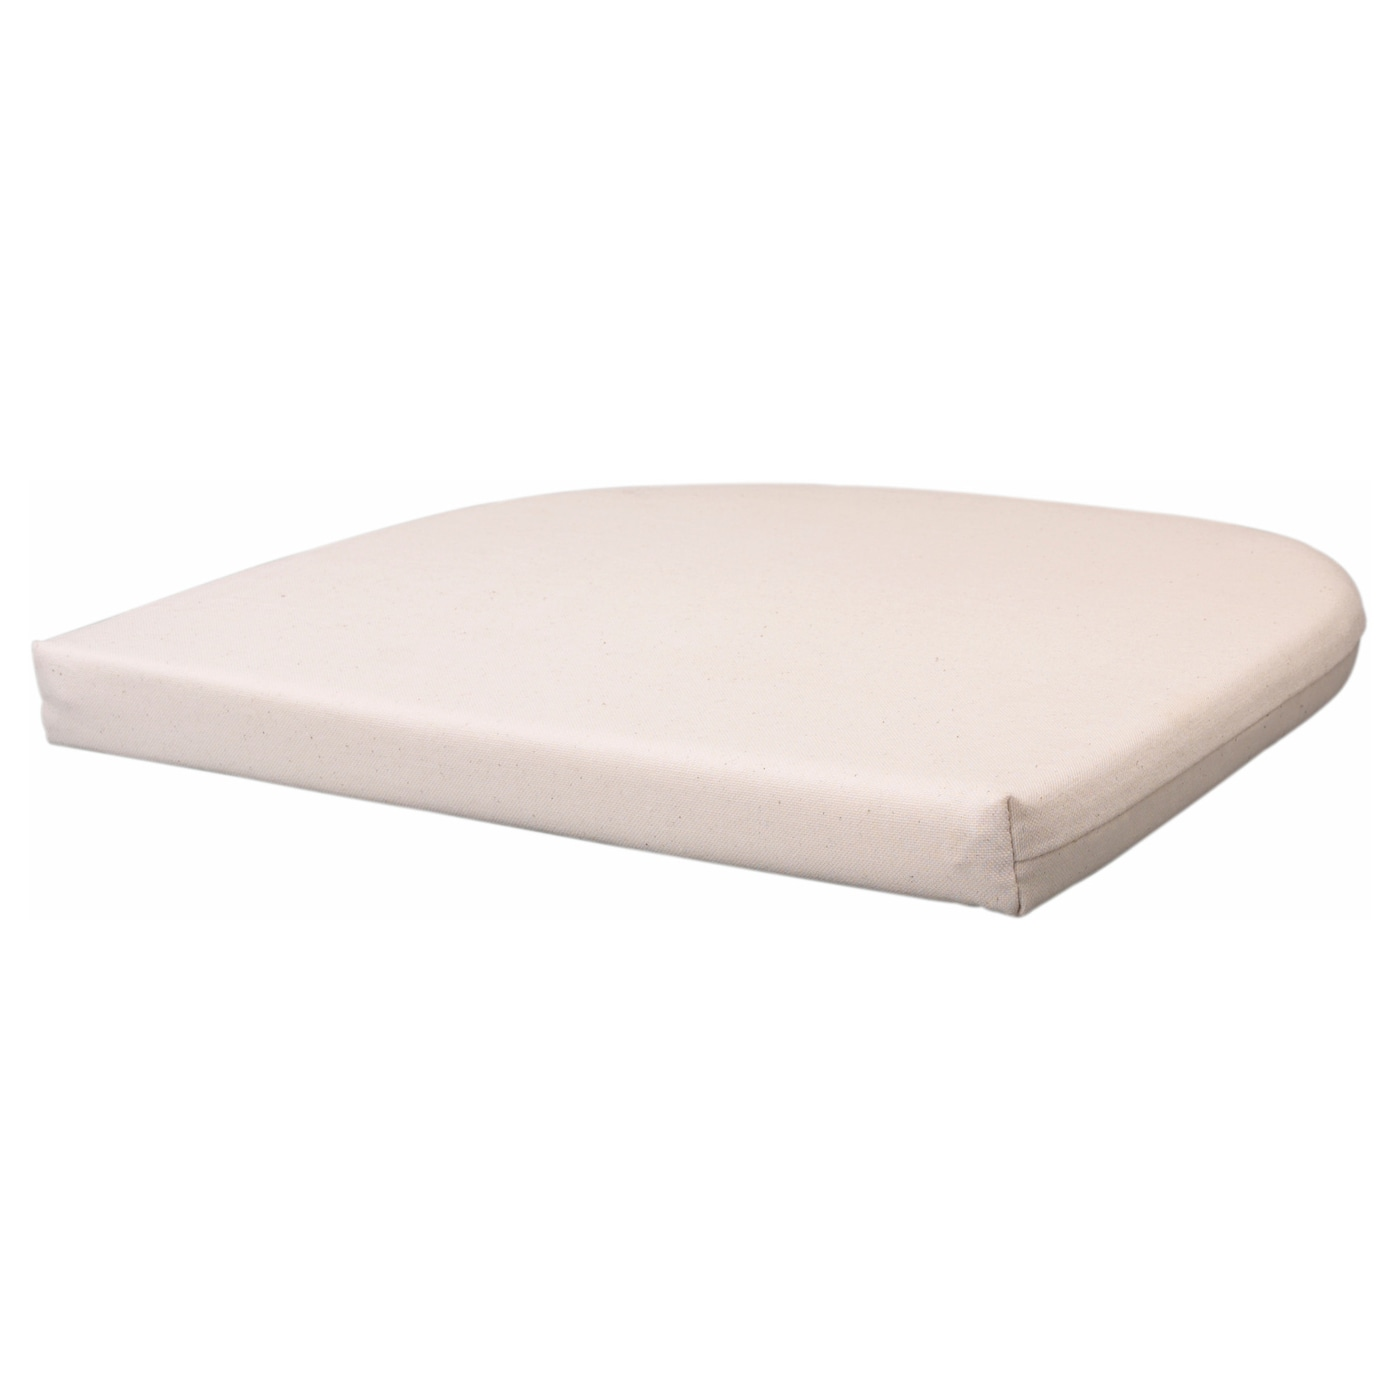 IKEA NORNA chair pad The cushion can be turned over and therefore has two sides for even wear.